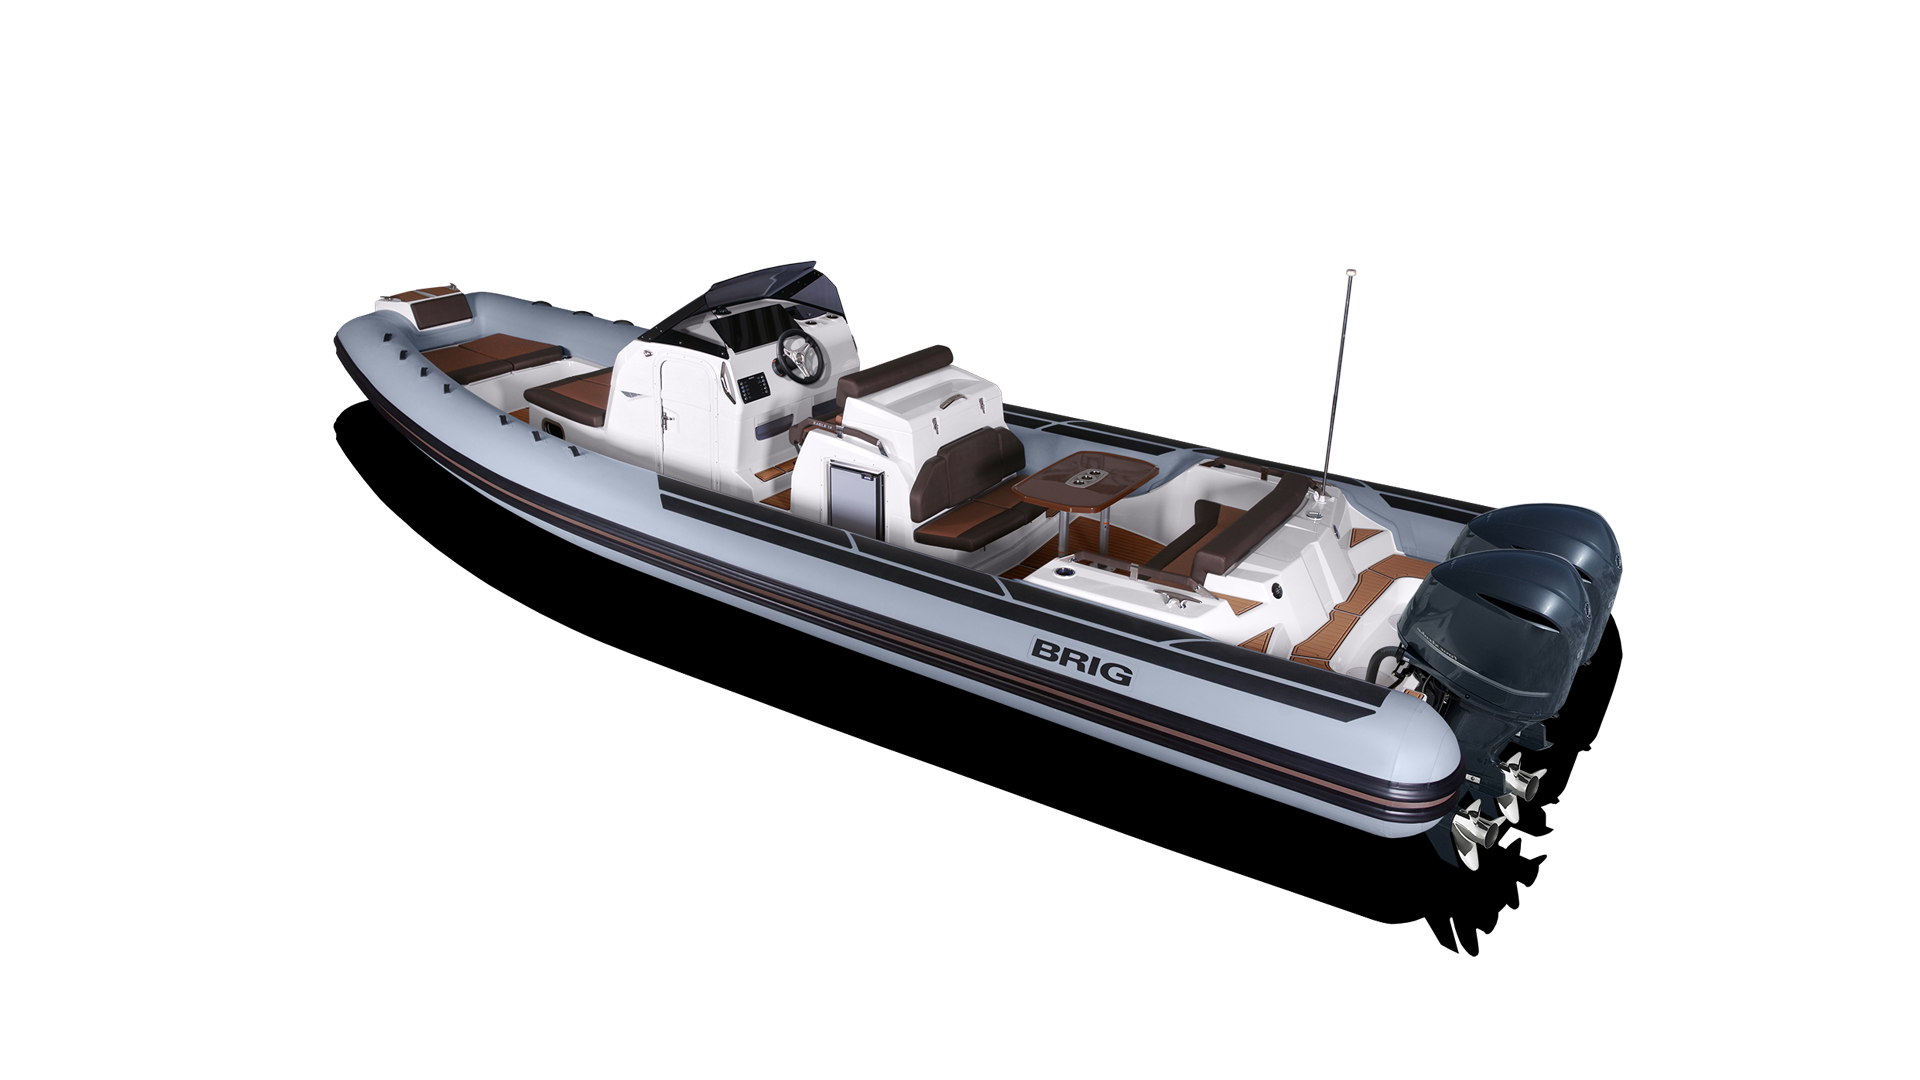 Eagle 10 Rigid Inflatable Boat